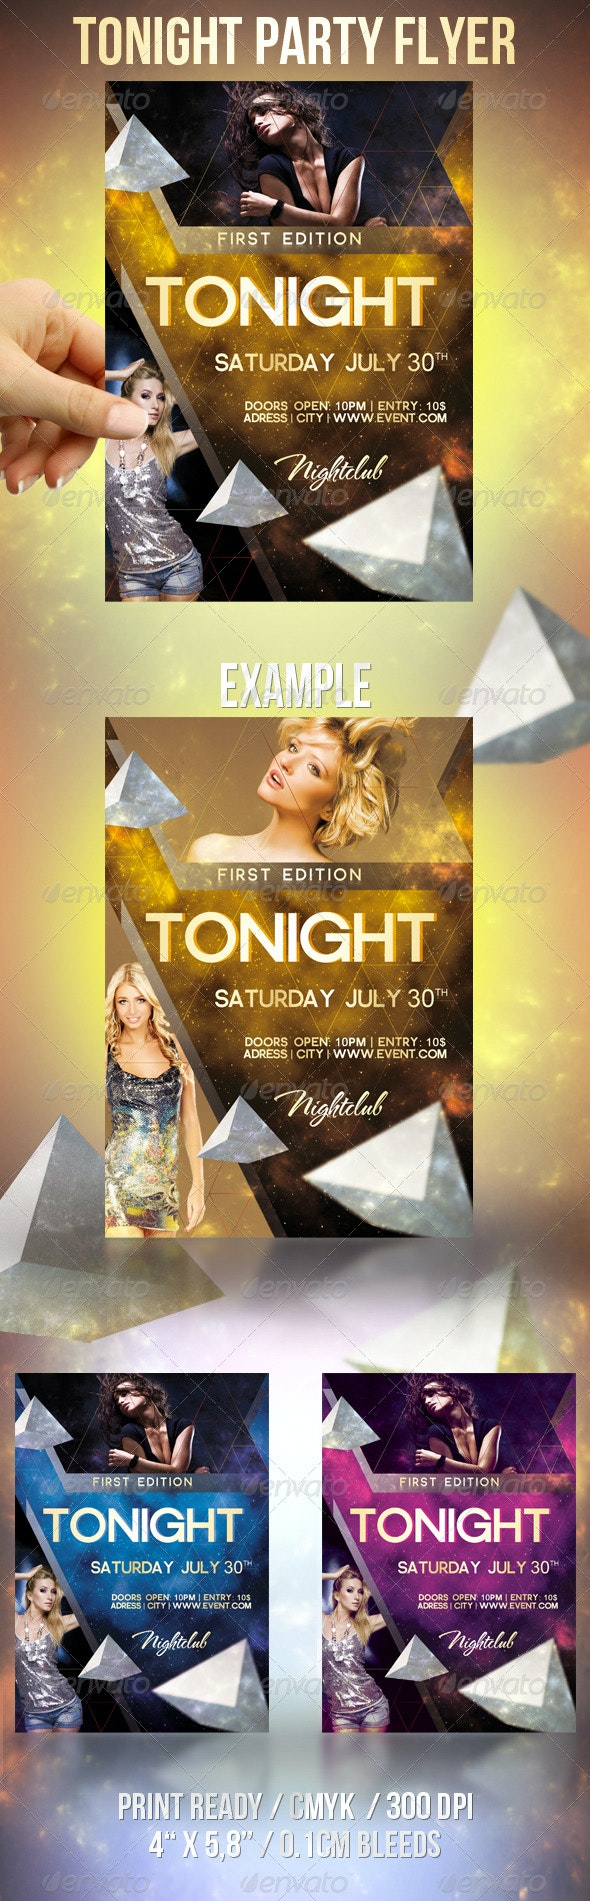 Tonight Party Flyer - Clubs & Parties Events